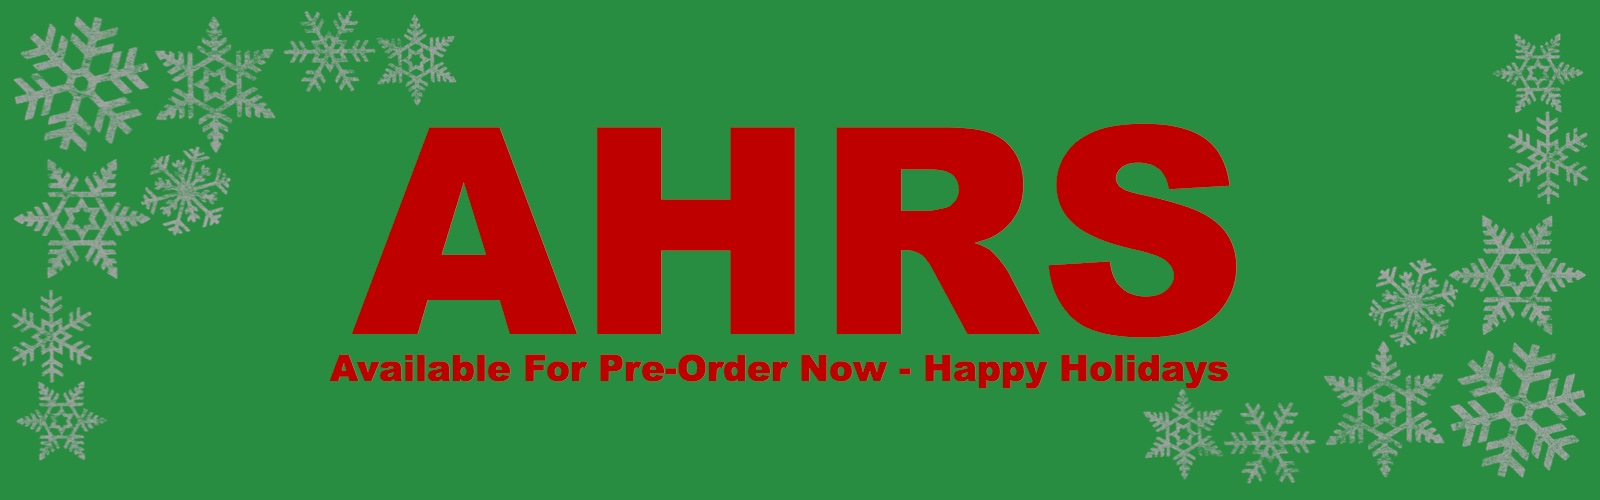 AHRS Now Available